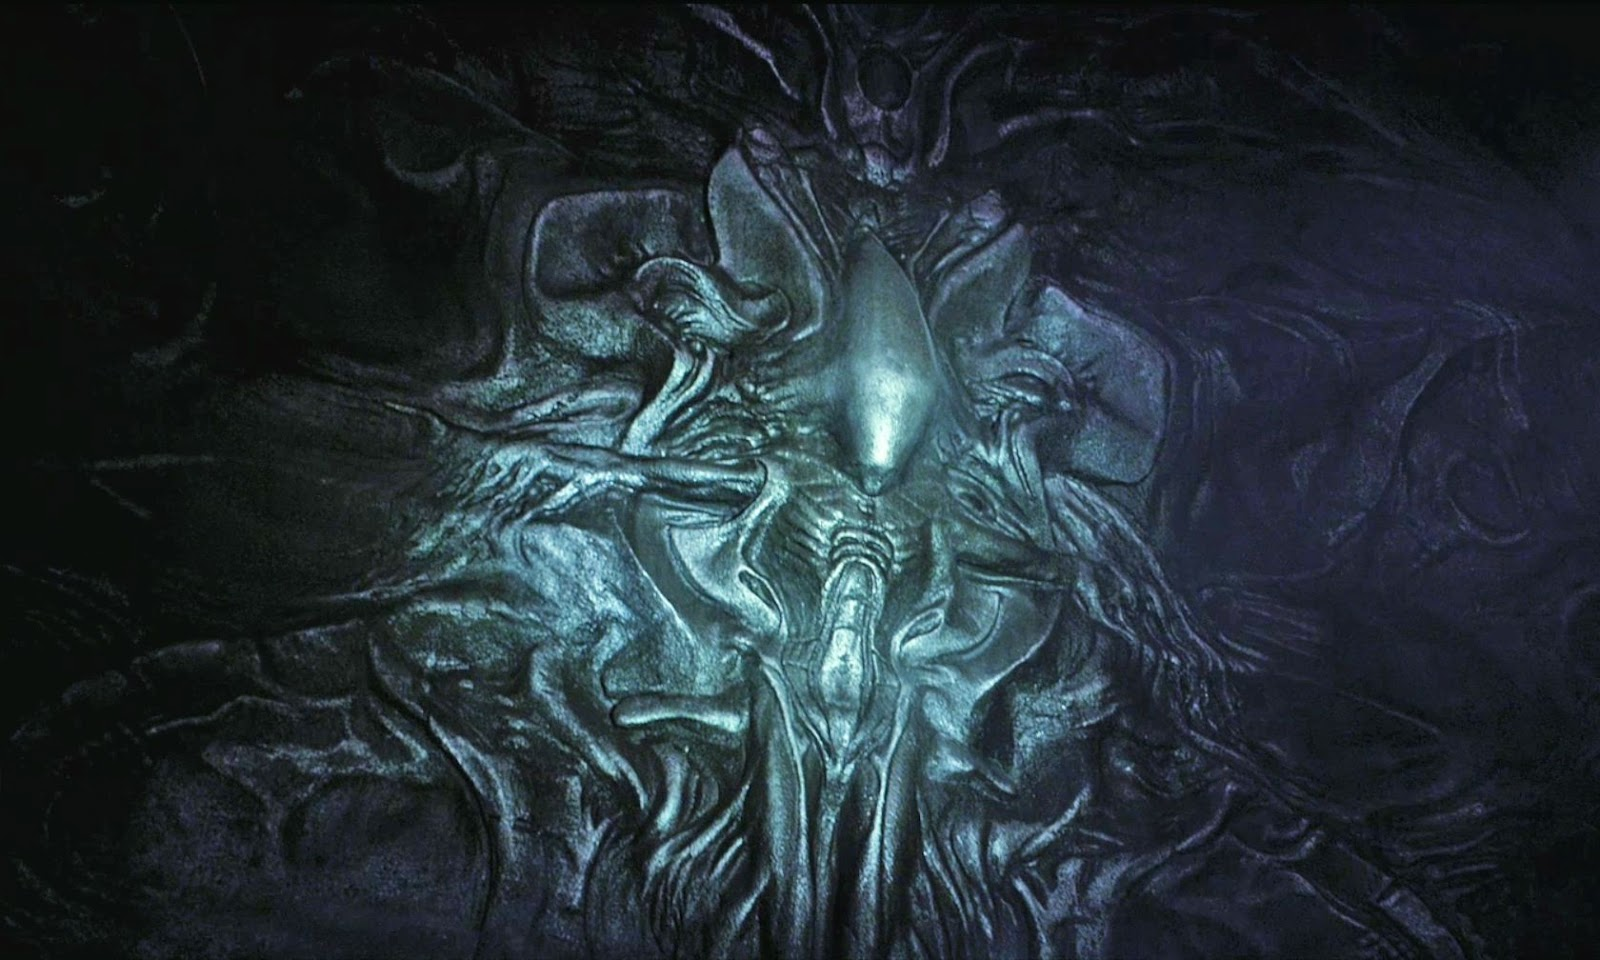 Mural in the engineer base on lv 223 suggesting that the xenomorphs